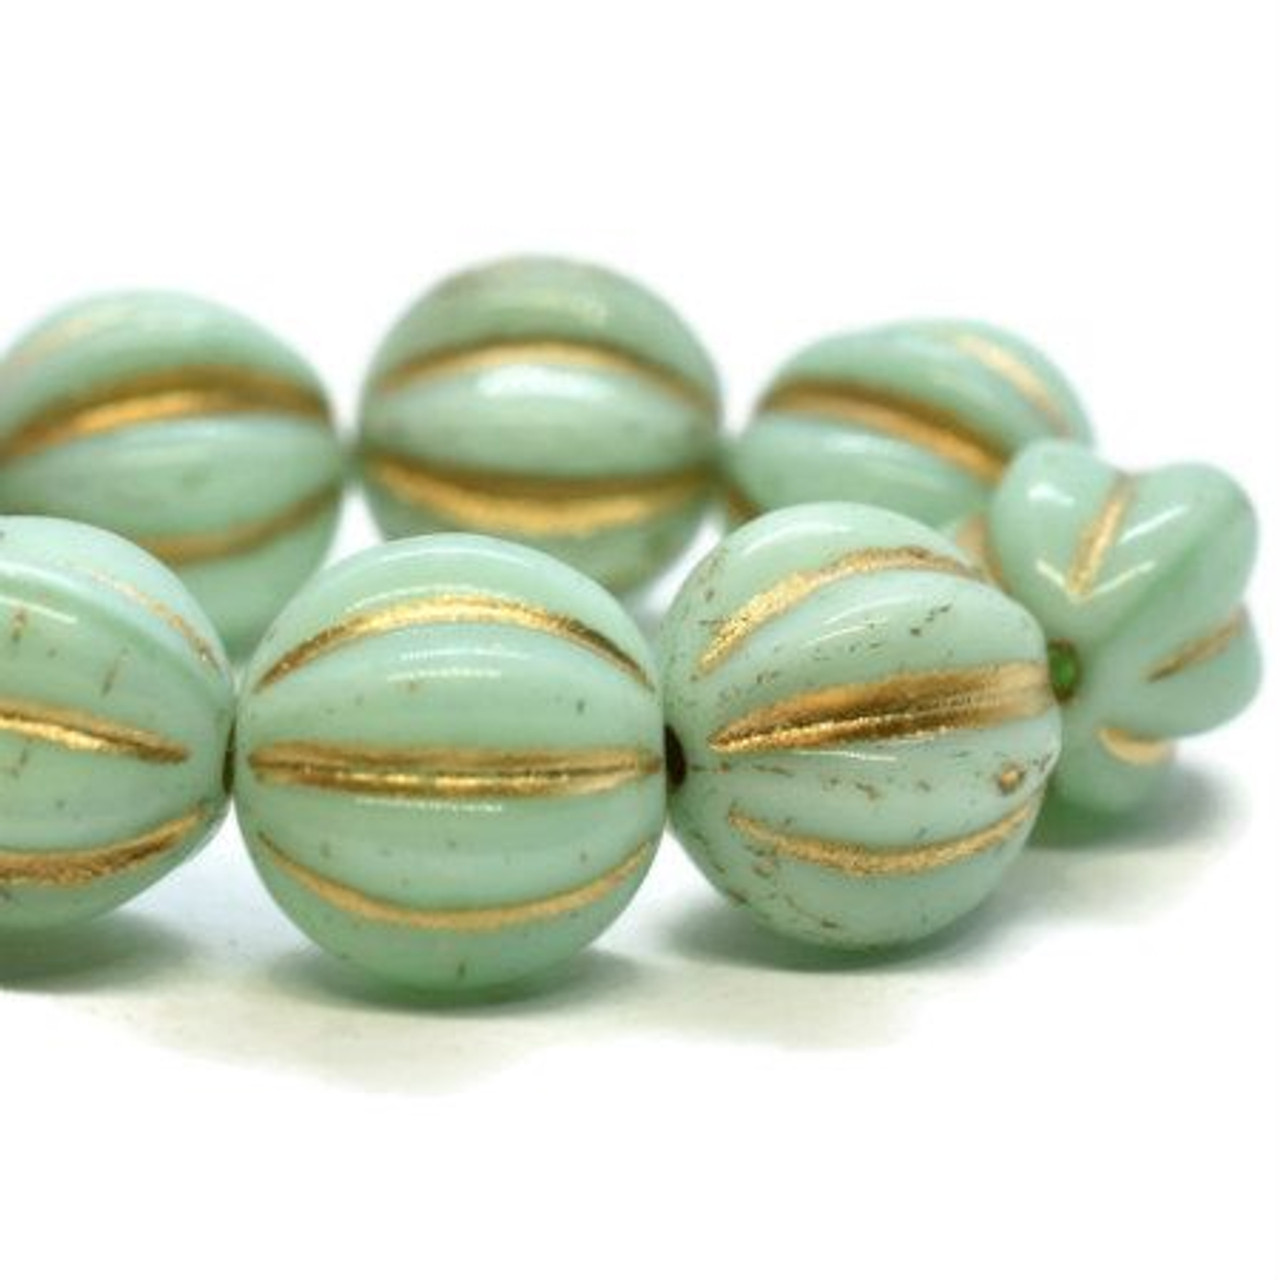 10mm Mint Melon with Gold Wash Melon Beads (15 Beads)